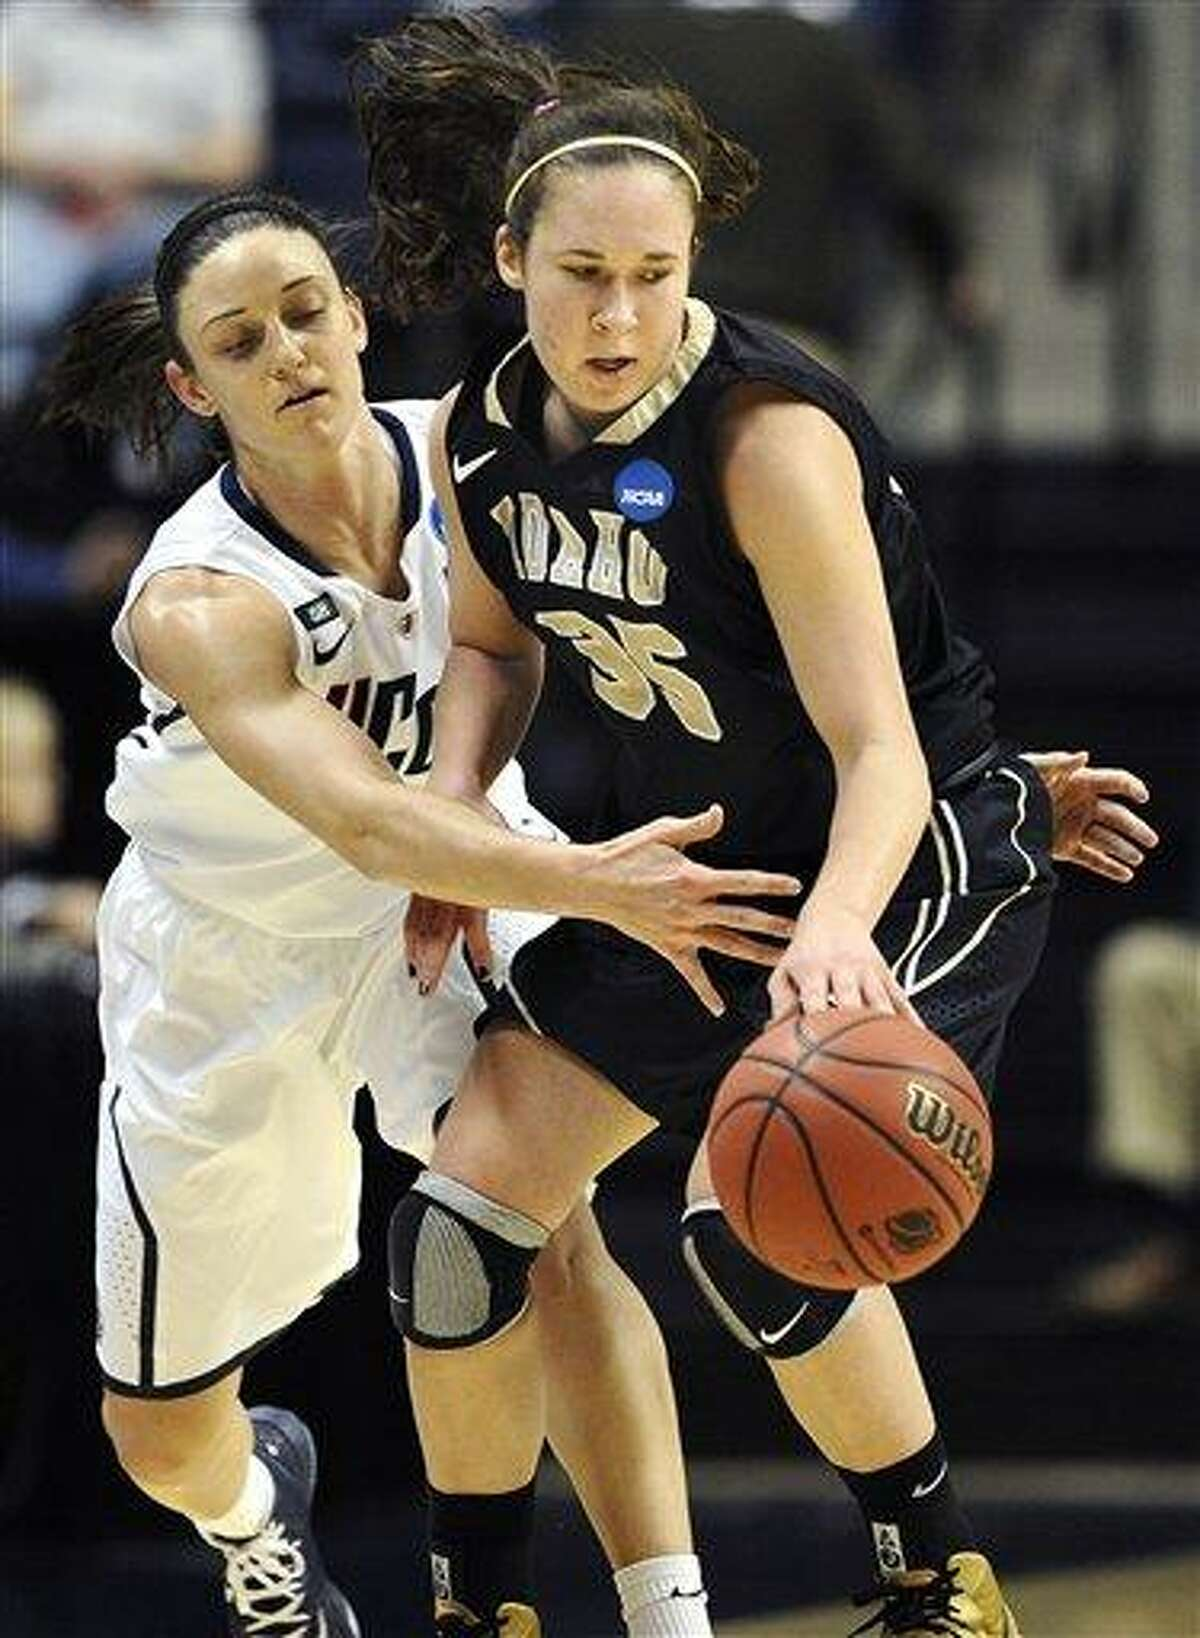 Connecticut's Kelly Faris, left, pressures Idaho's Connie Ballestero, right, in the first half of a first-round game in the women's NCAA college basketball tournament in Storrs, Conn., Saturday, March 23, 2013. (AP Photo/Jessica Hill)